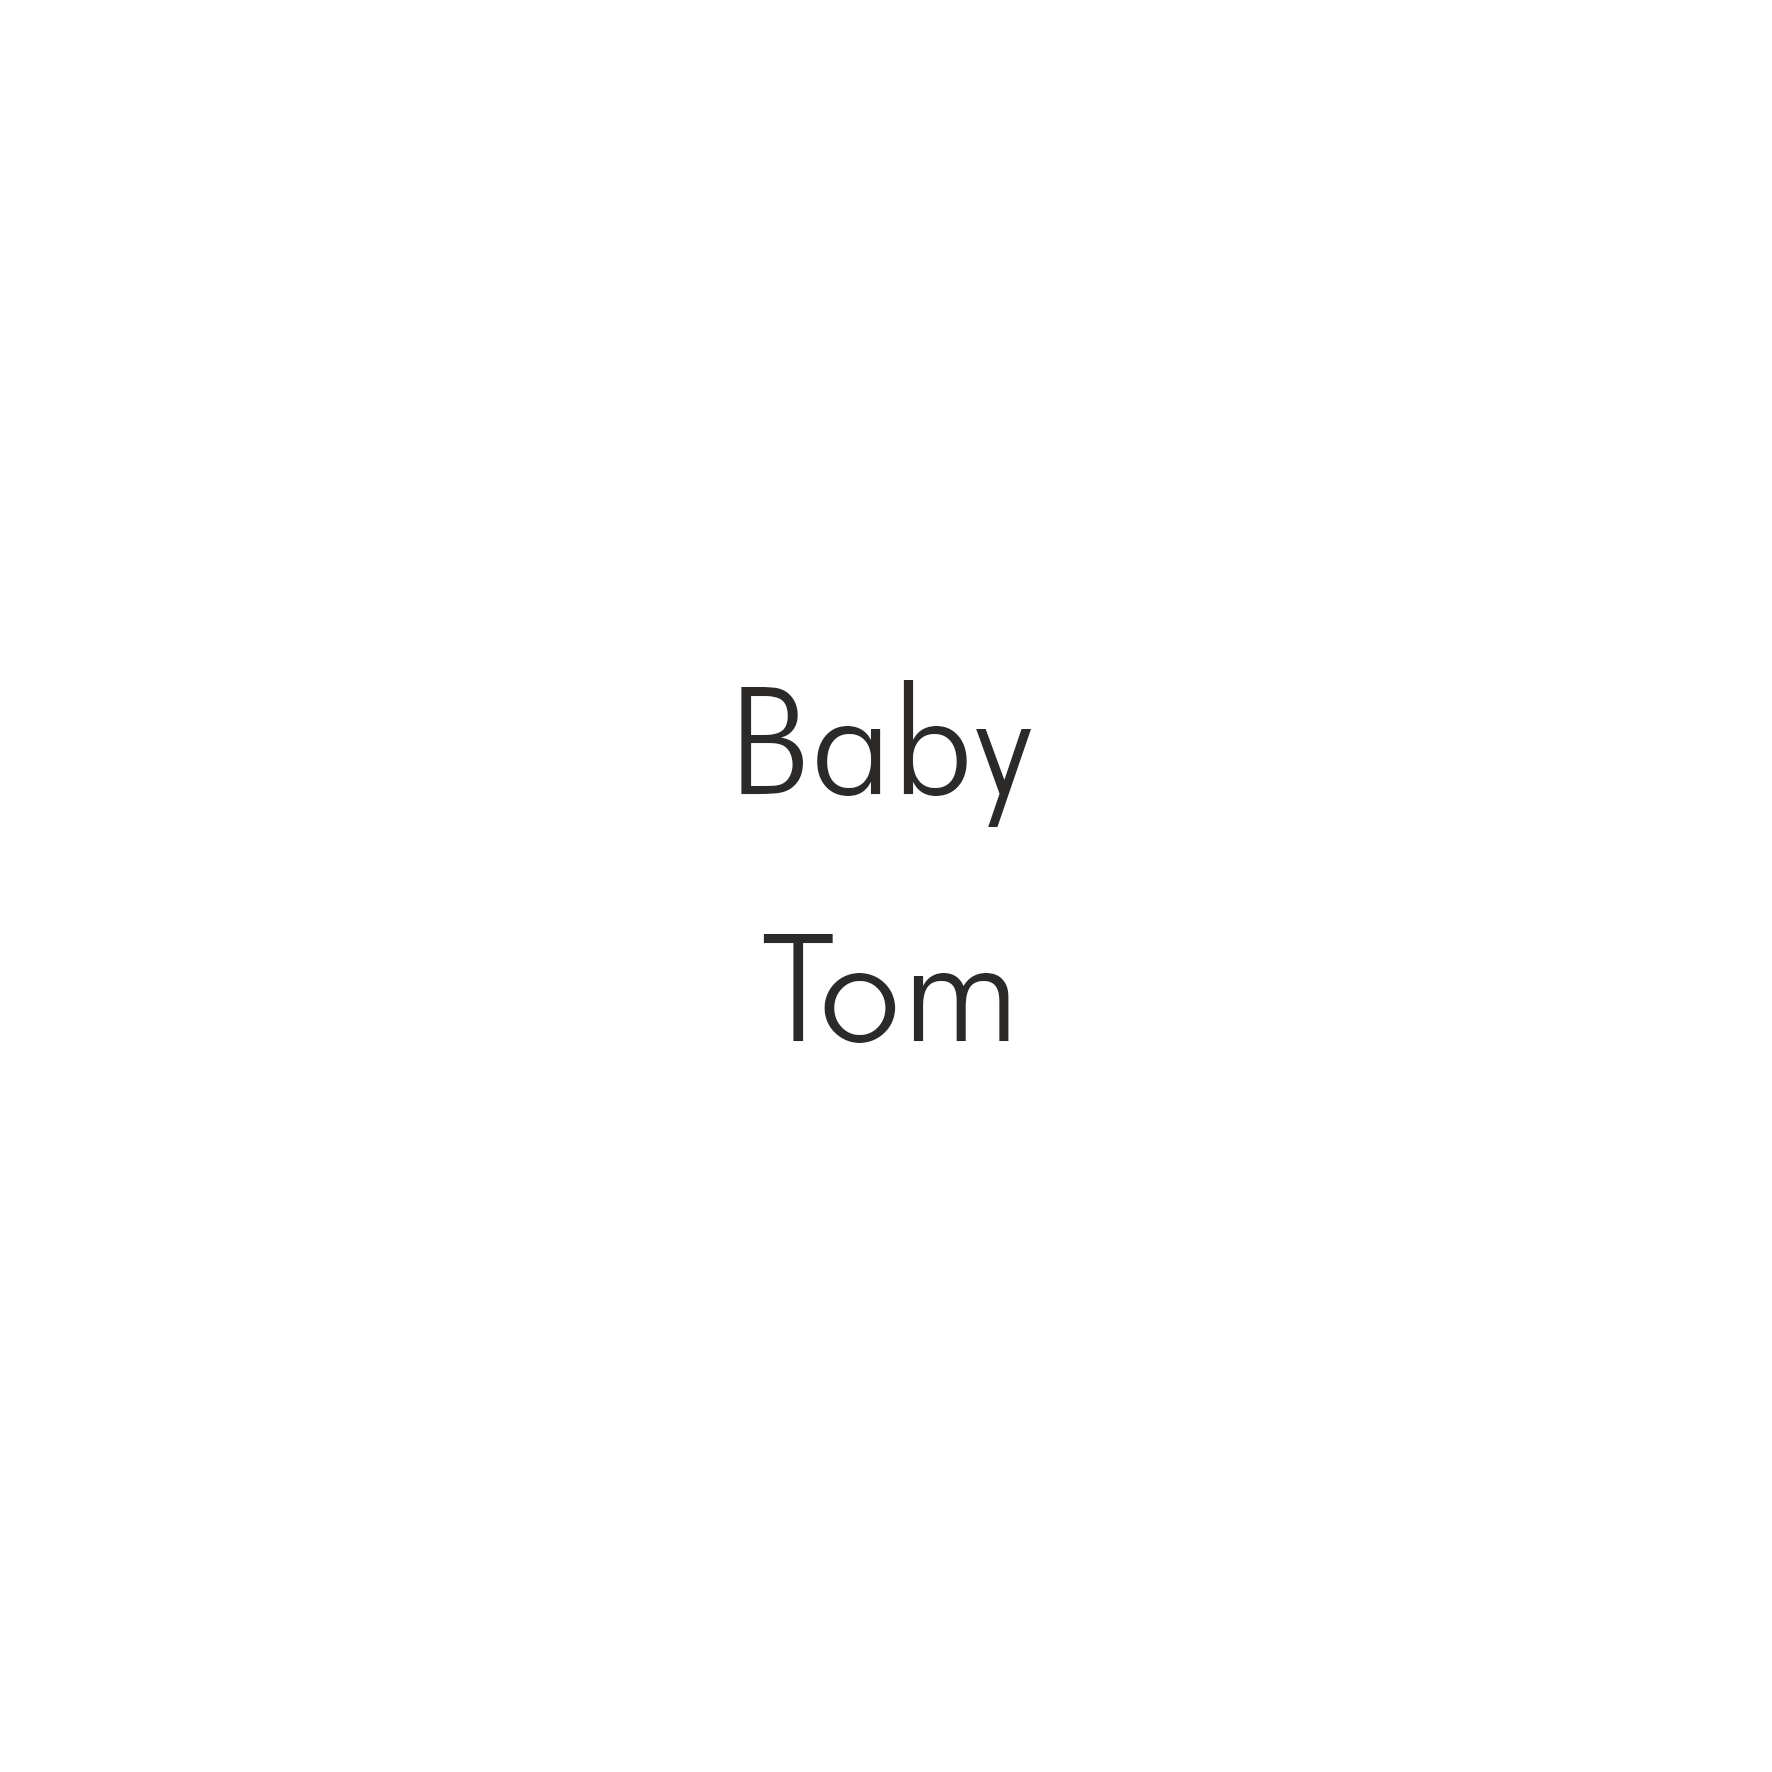 Baby Tom.png